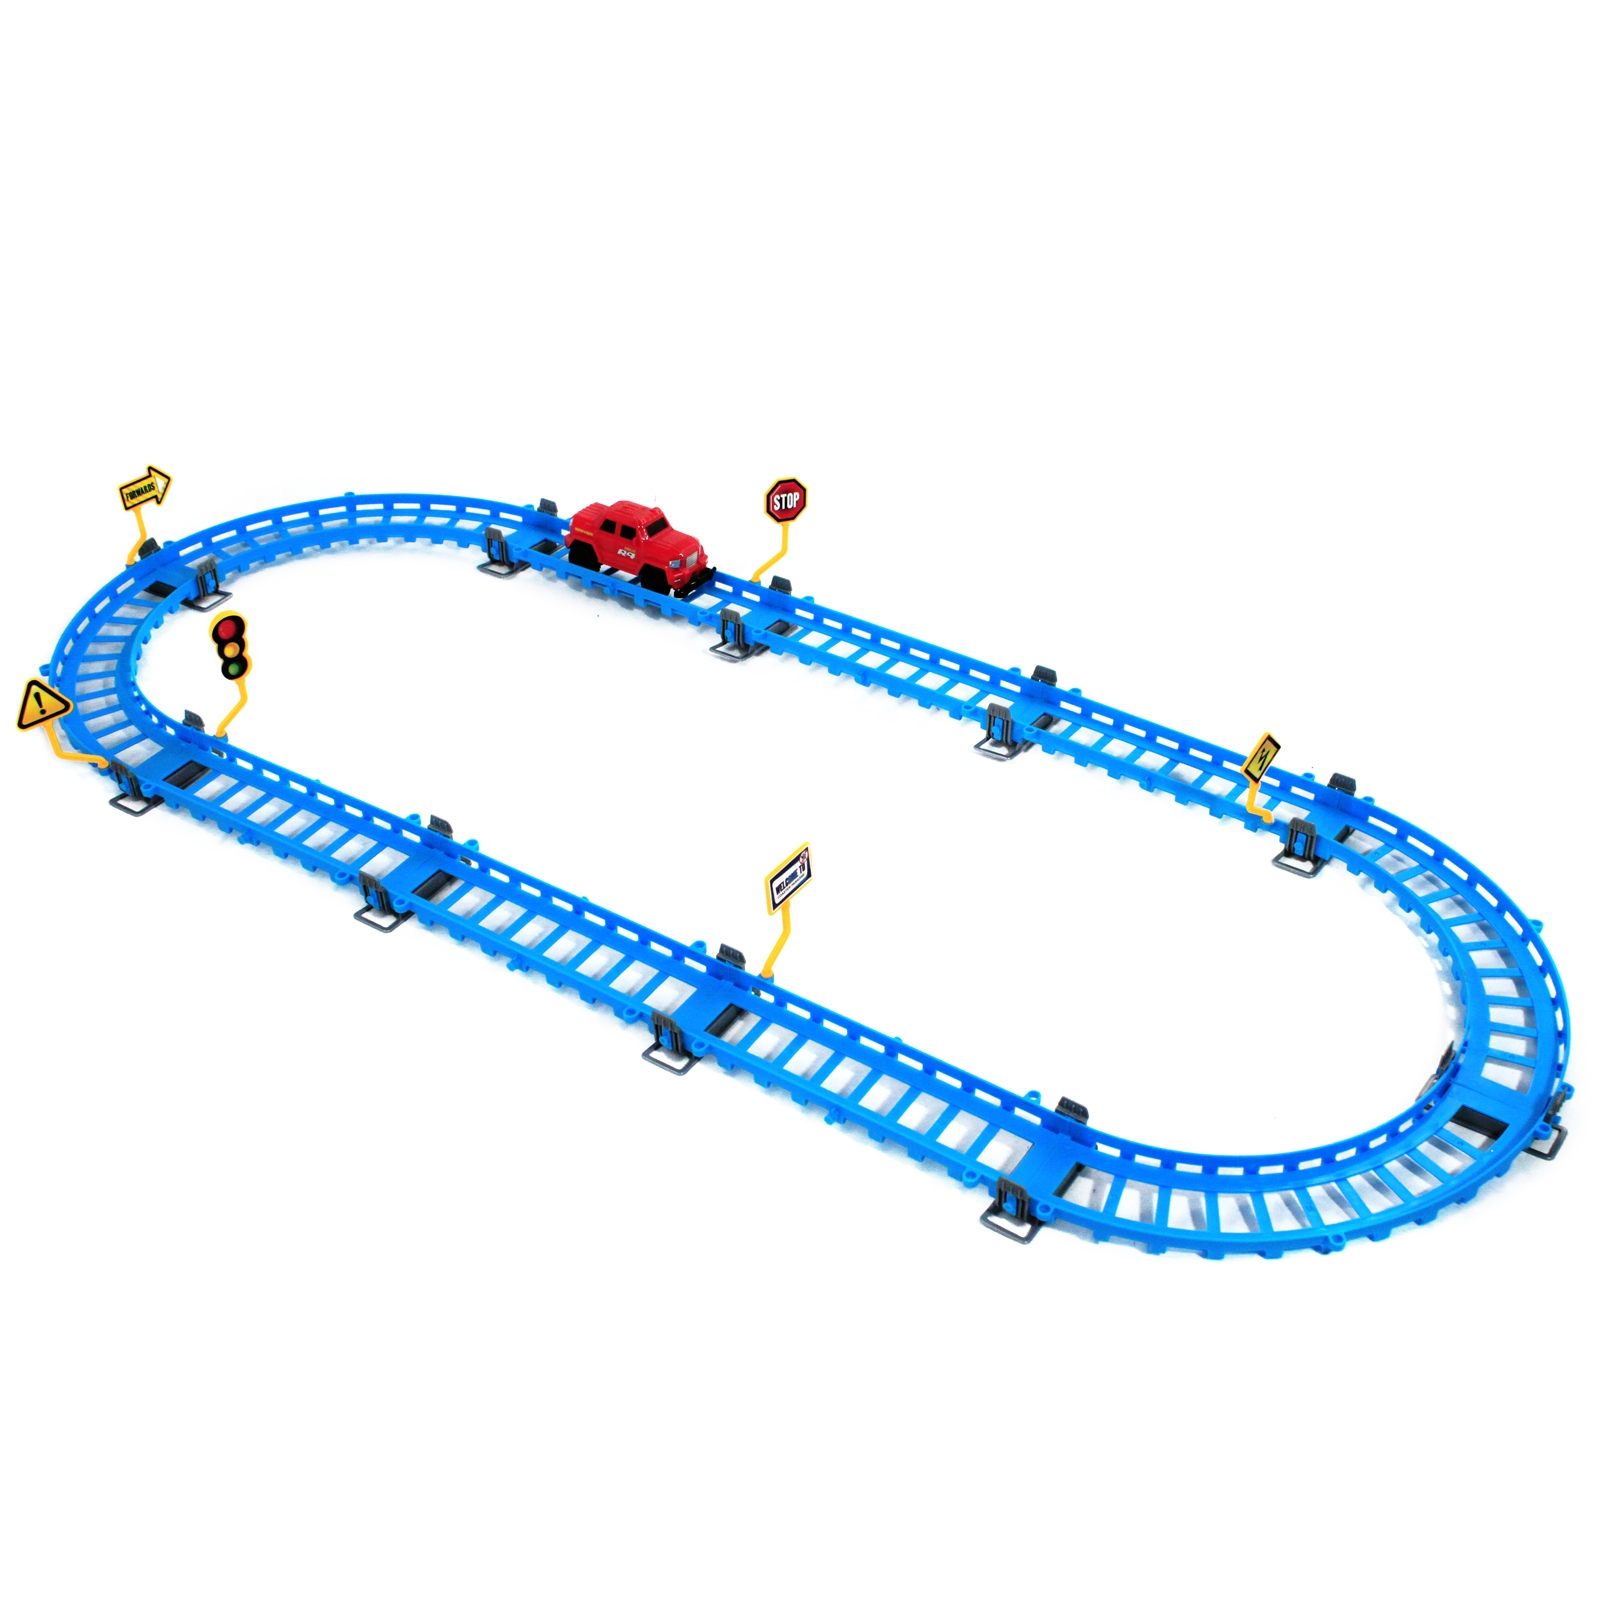 Kids Speed Racing Truck with 86 Inches of Track 25 Pieces Total